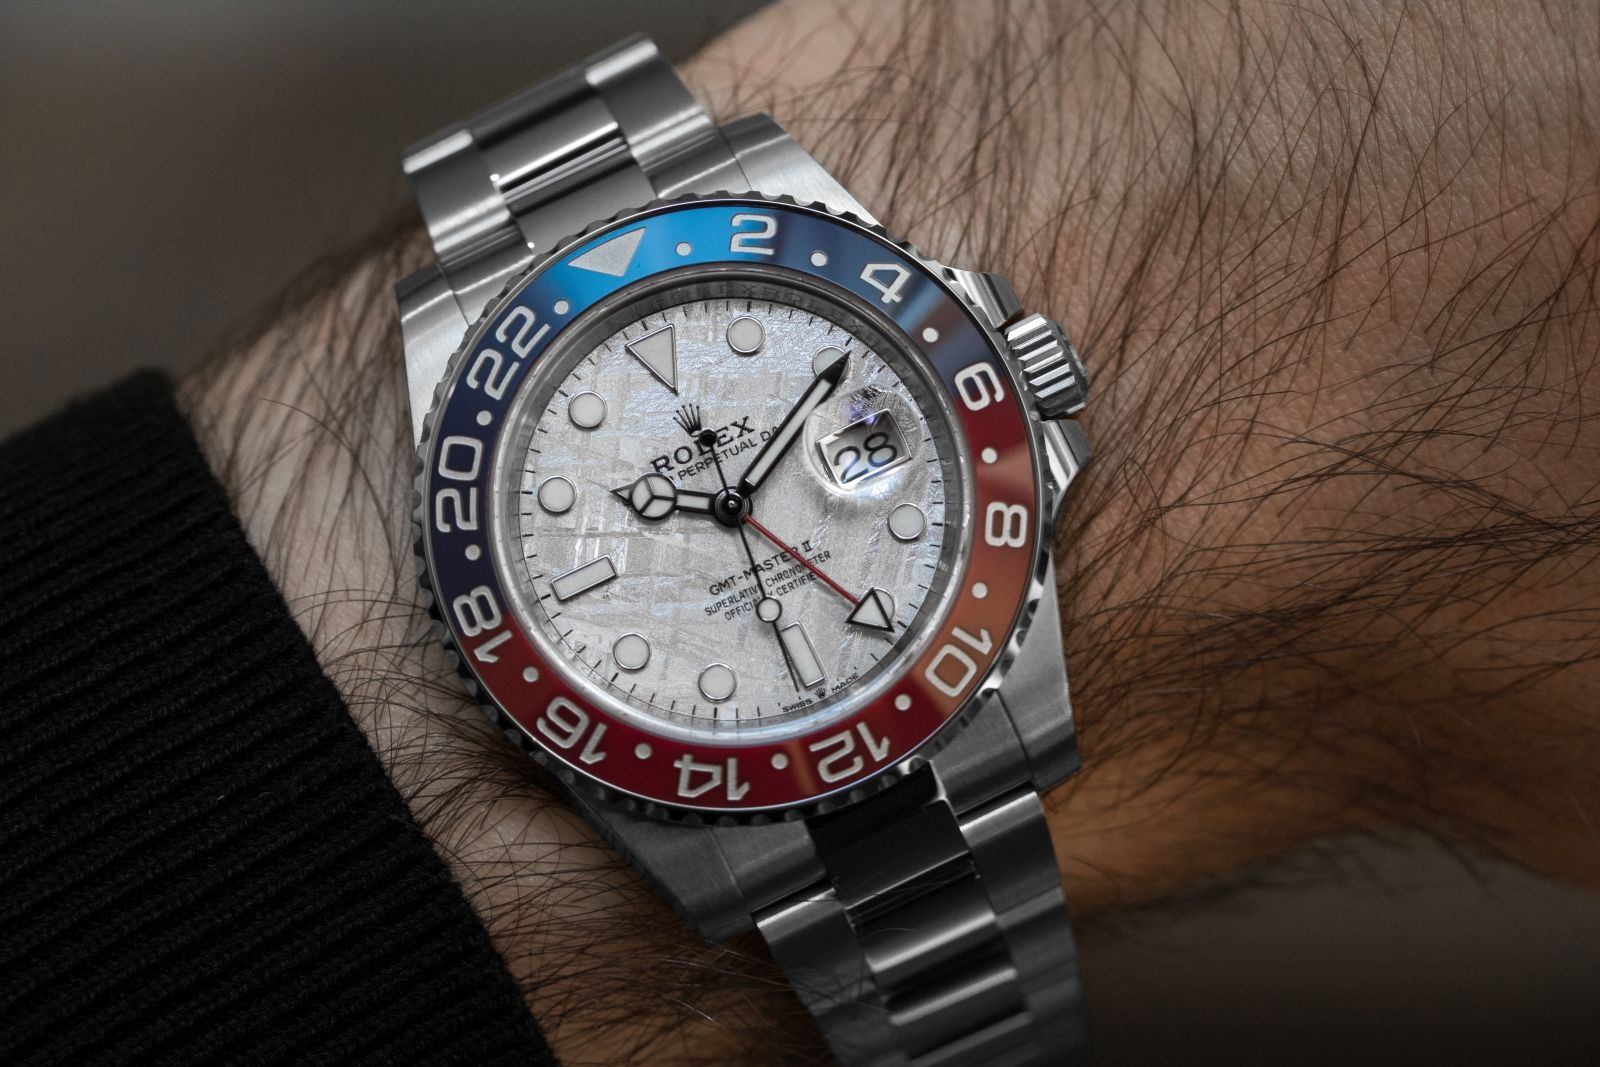 Rolex Is Presenting A New Version Of The Oyster Perpetual Gmt Master Ii In 18ct White Gold With A Bidirectional R Rolex Rolex Oyster Perpetual Oyster Perpetual